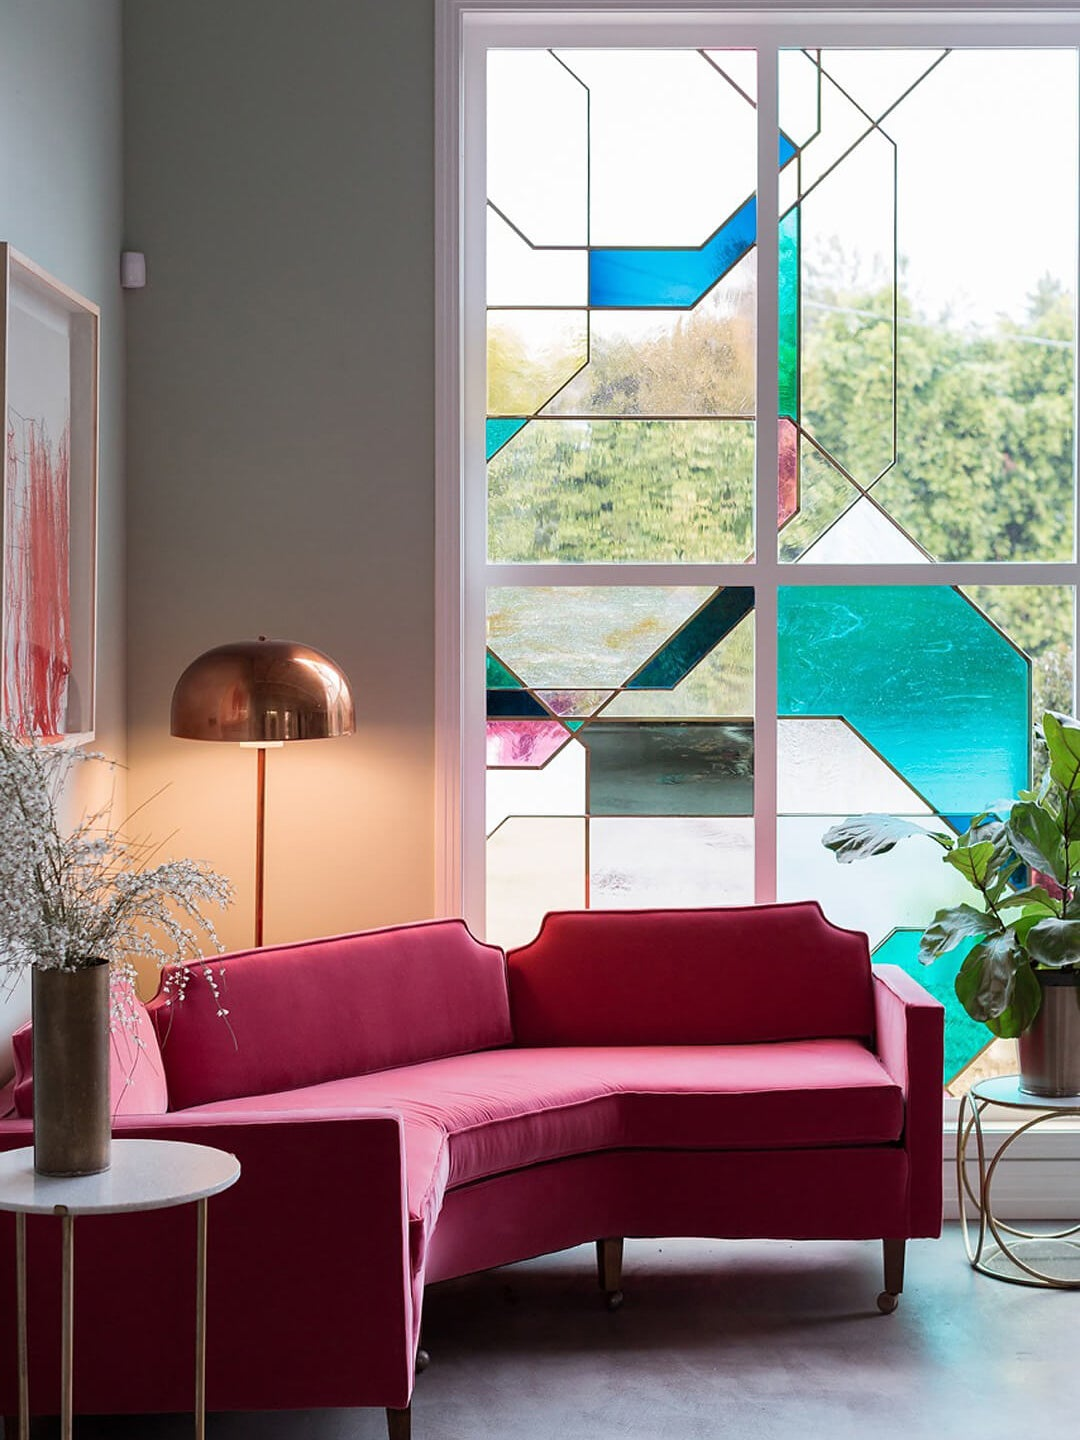 pink sofa in front of stained glass window